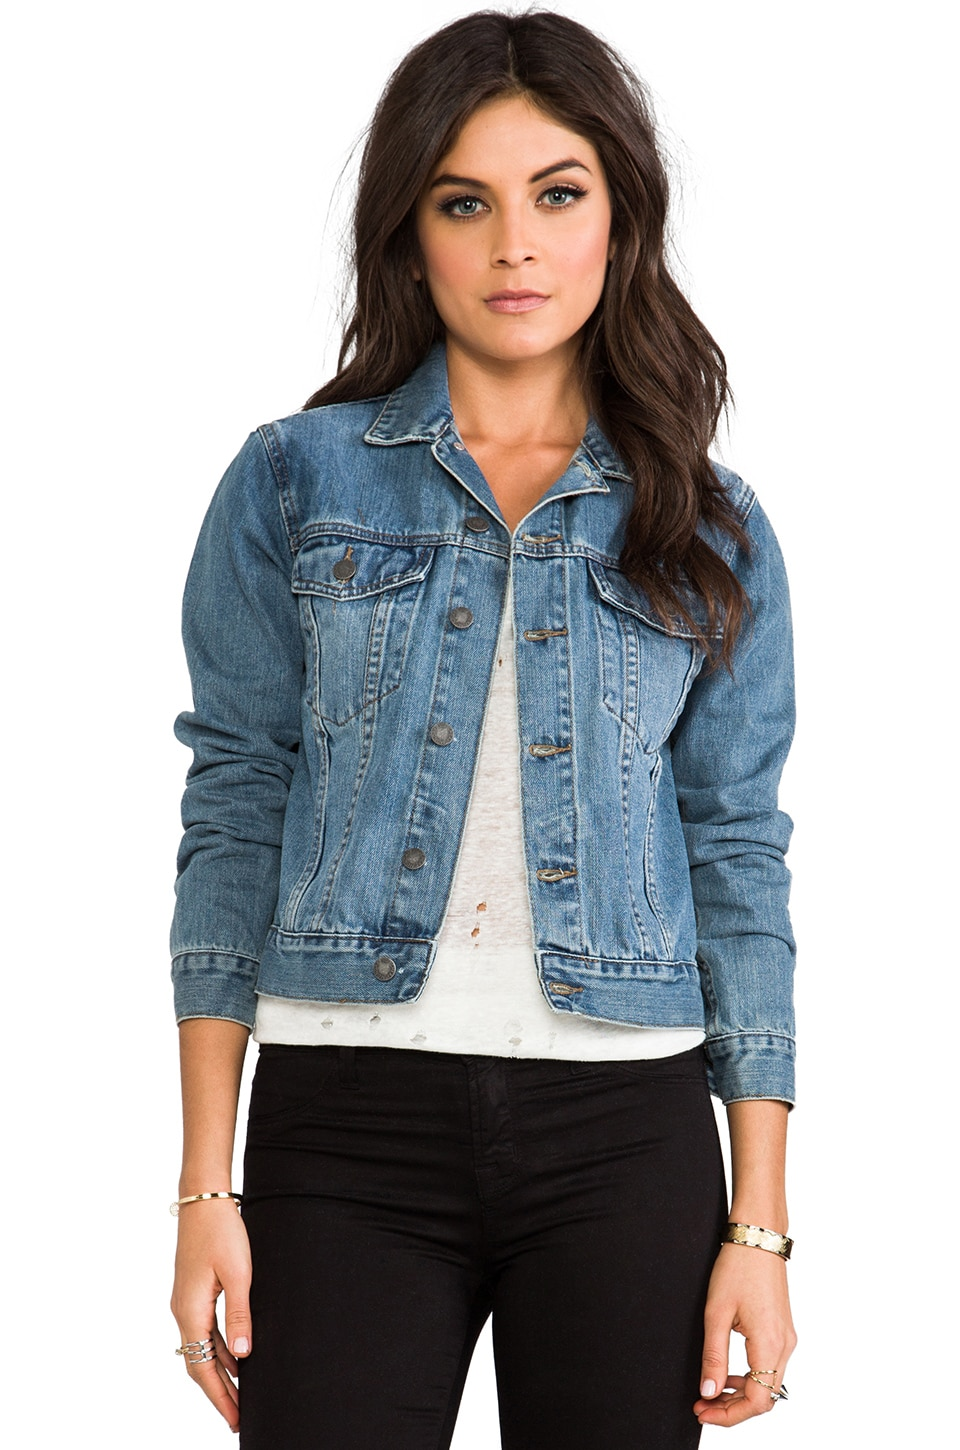 Buy the latest denim jackets cheap shop fashion style with free shipping, and check out our daily updated new arrival denim jackets at paydayloansonlinesameday.ga